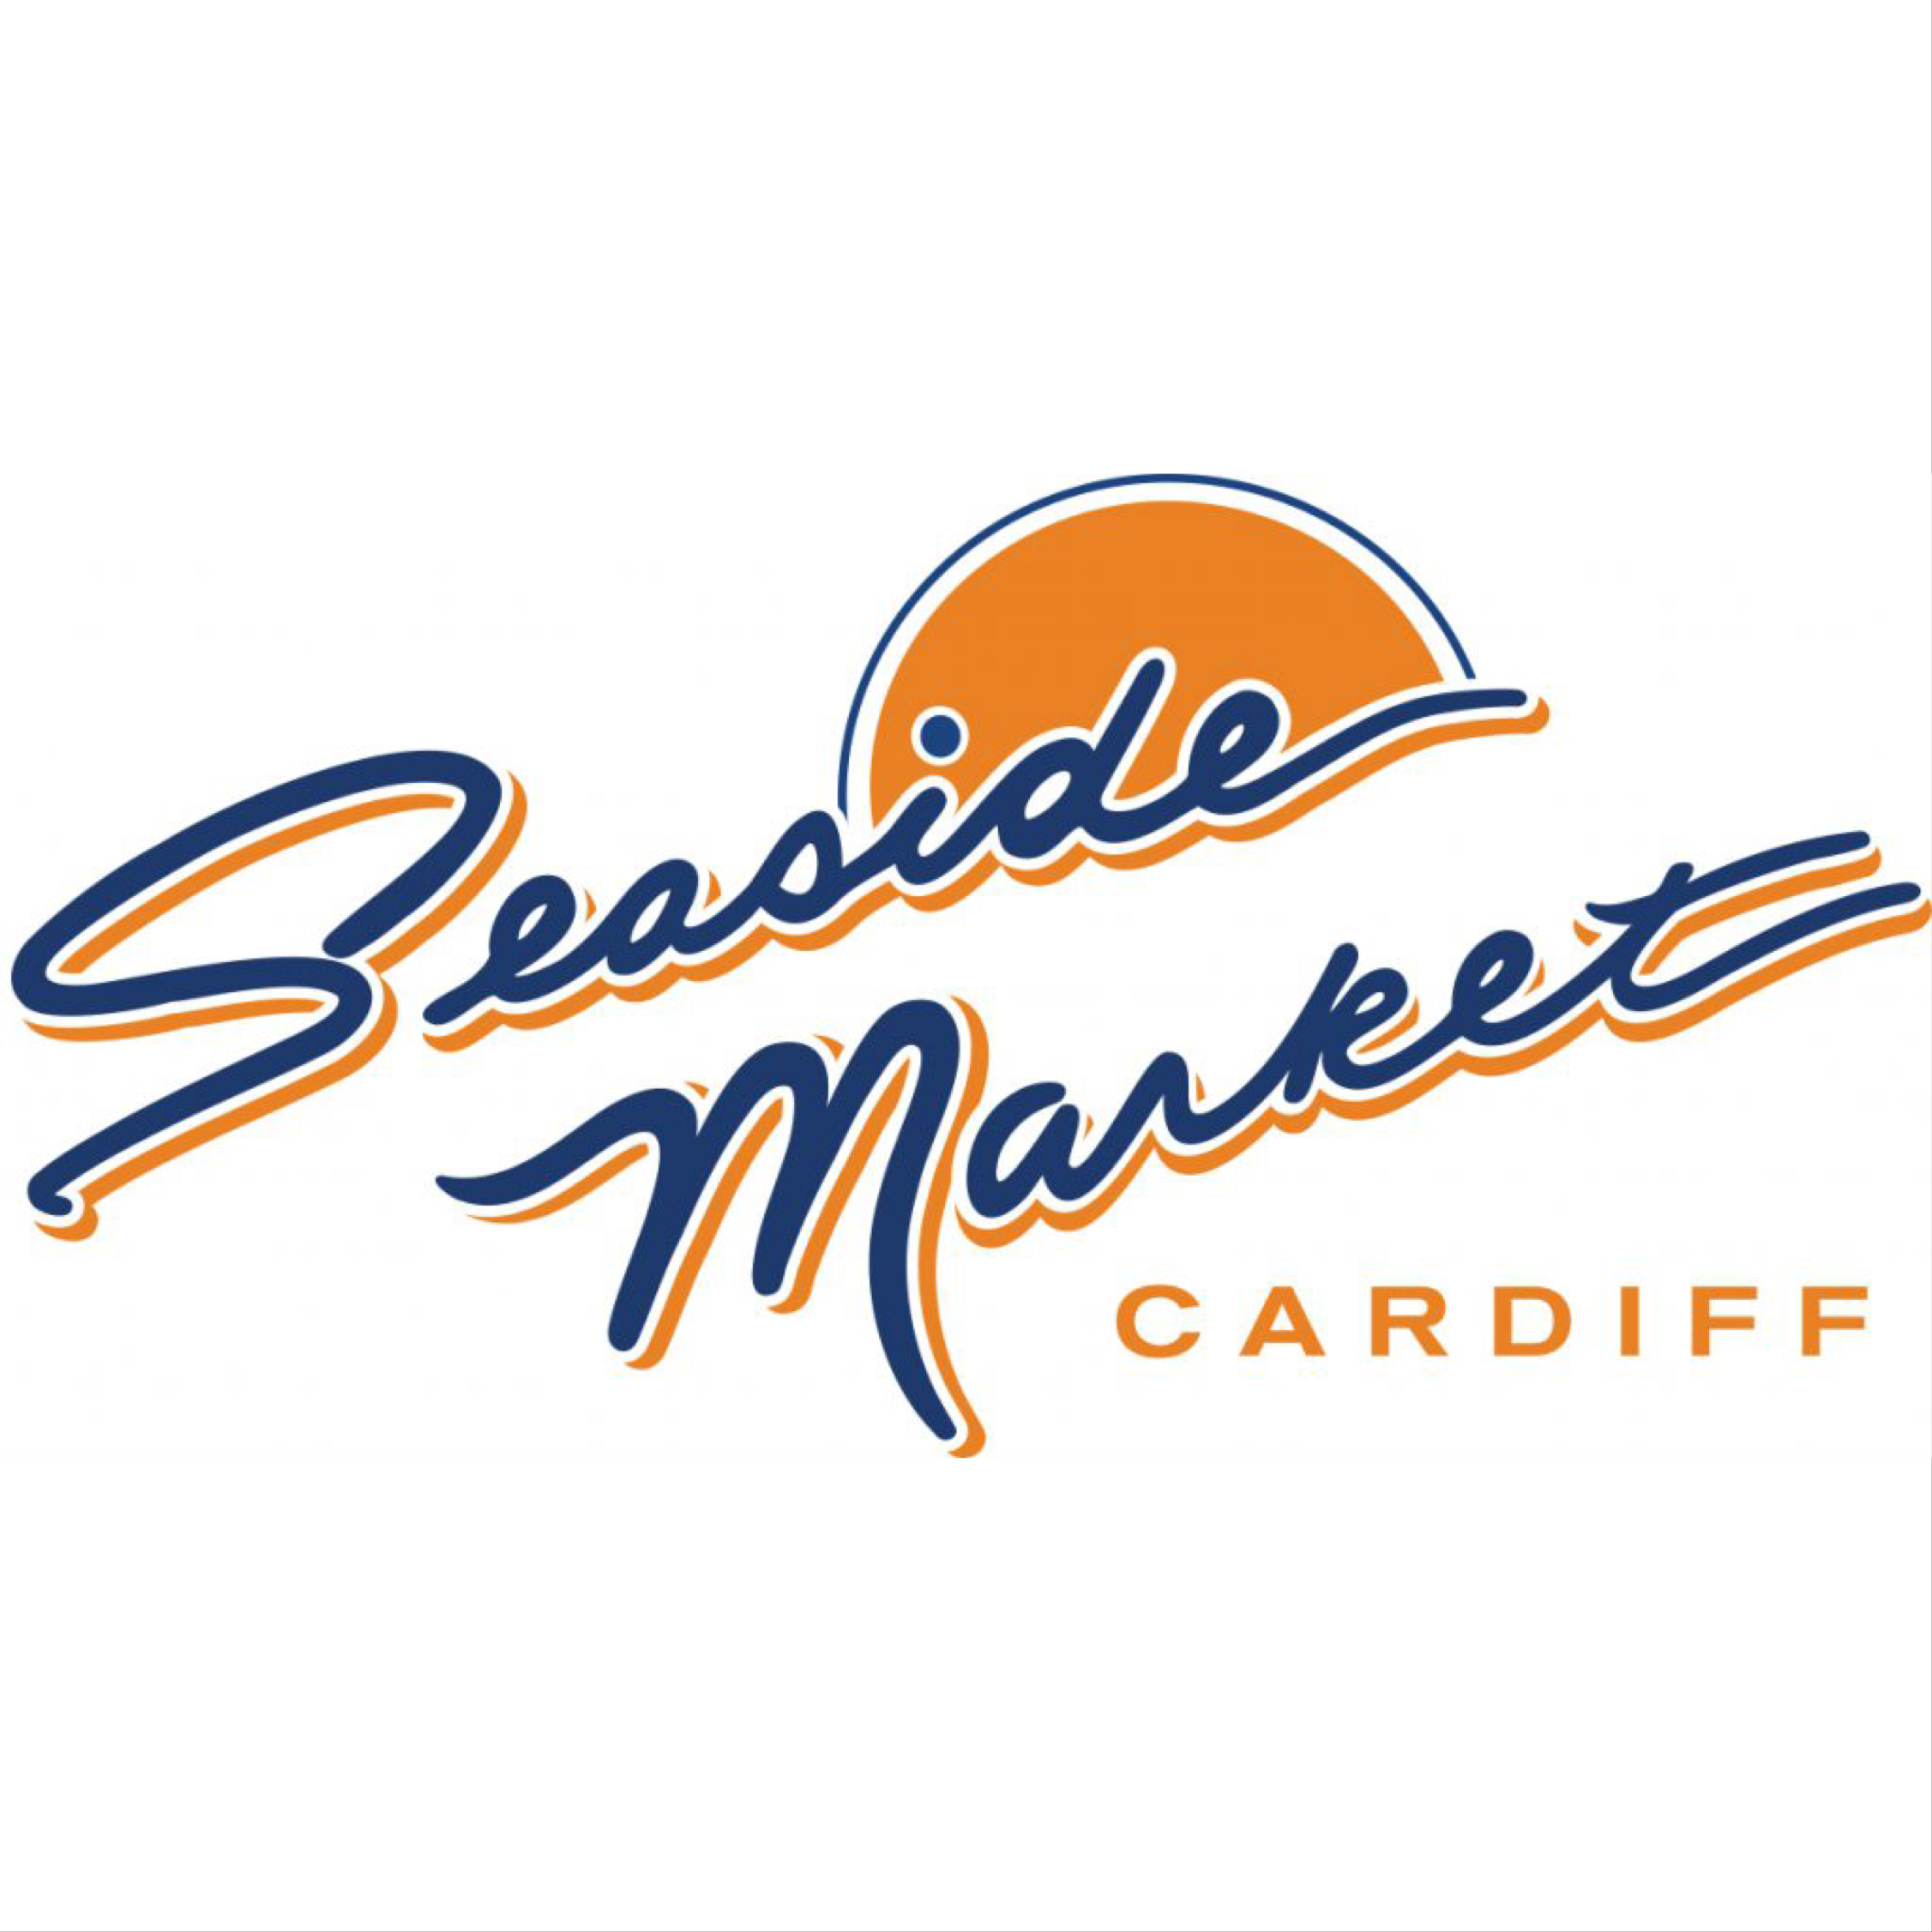 Sea Side Market